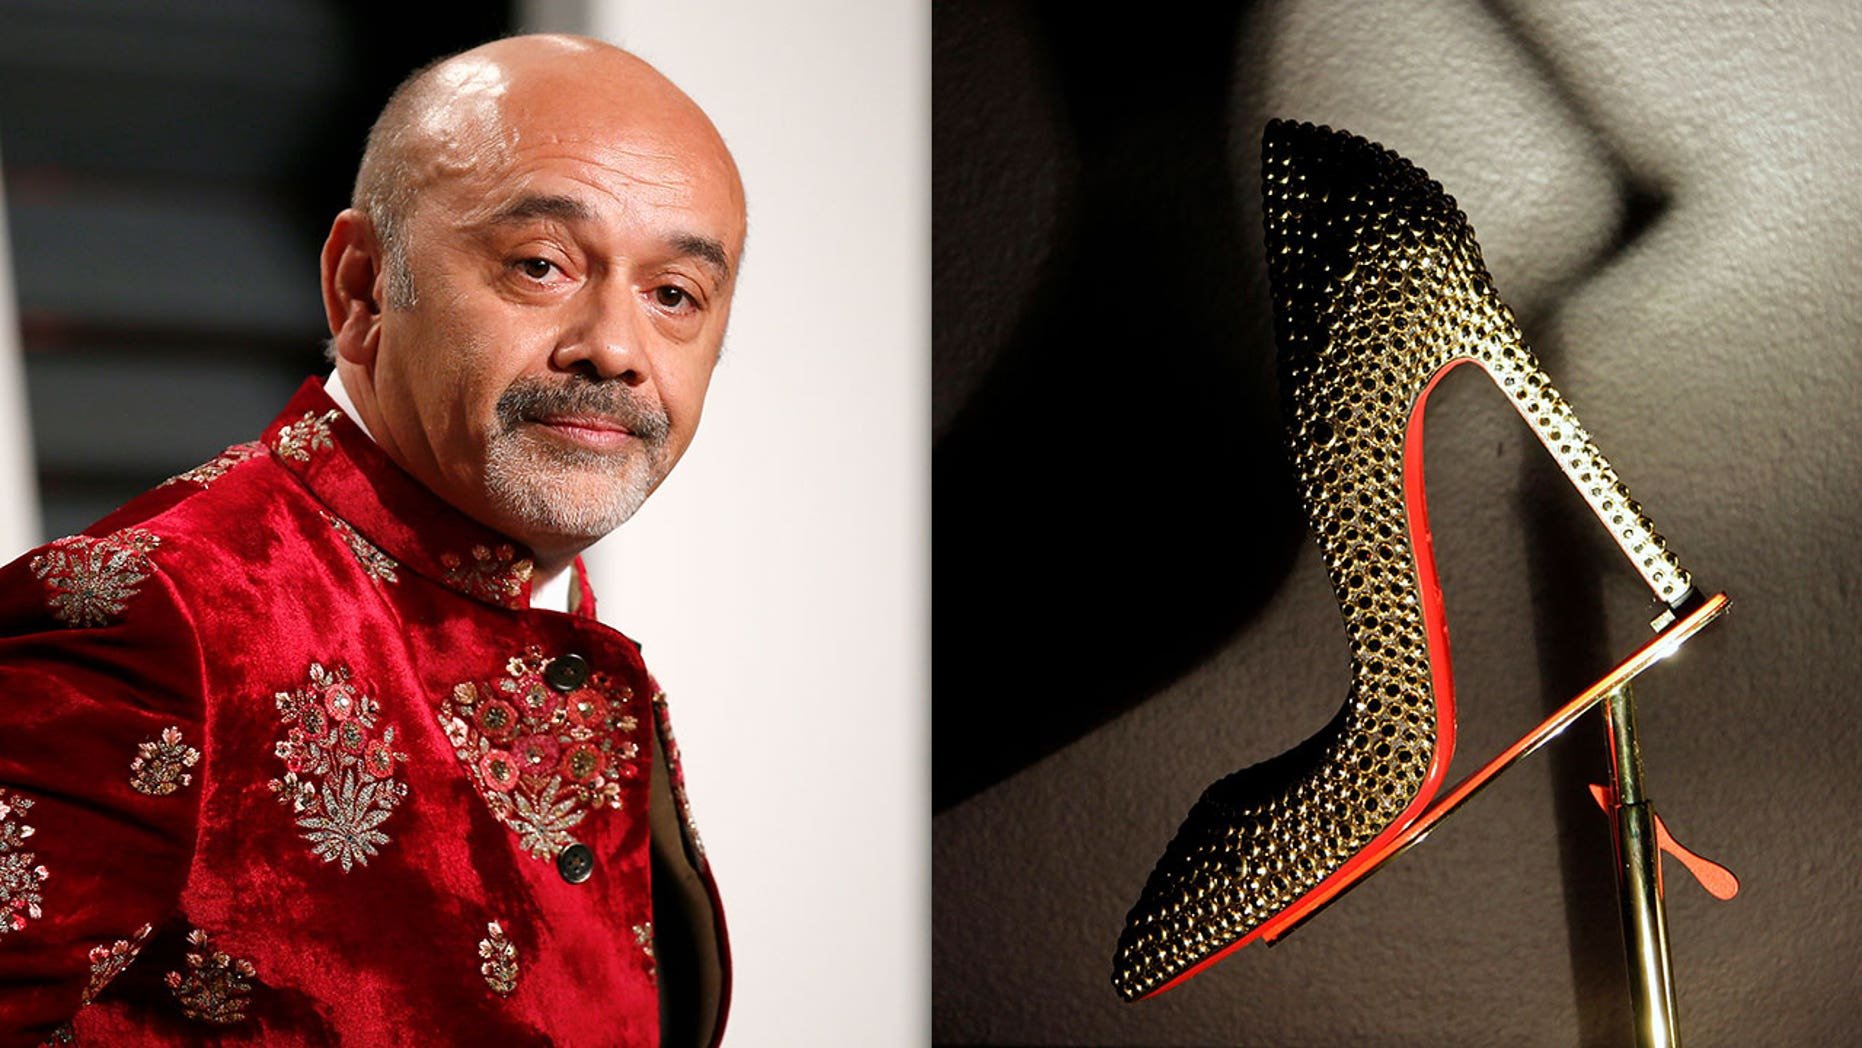 Christian Louboutin is fighting to keep a Dutch company from copying the signature feature of his red-soled heels.